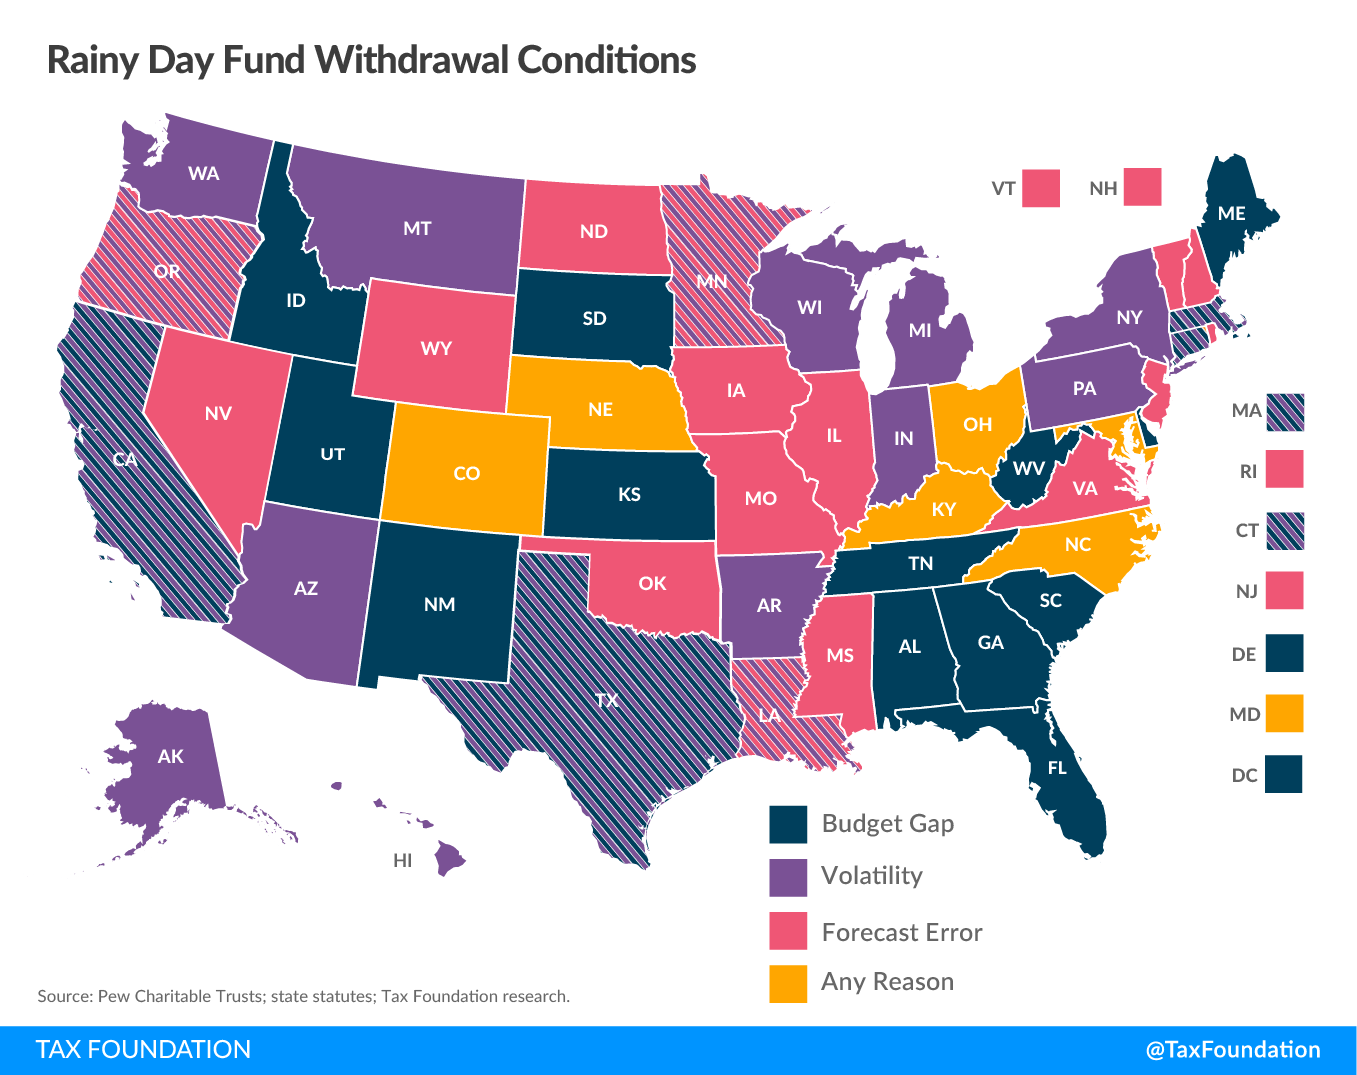 Under What Conditions Can a Rainy Day Fund Be Accessed? State Rainy Day Fund Withdrawal Conditions